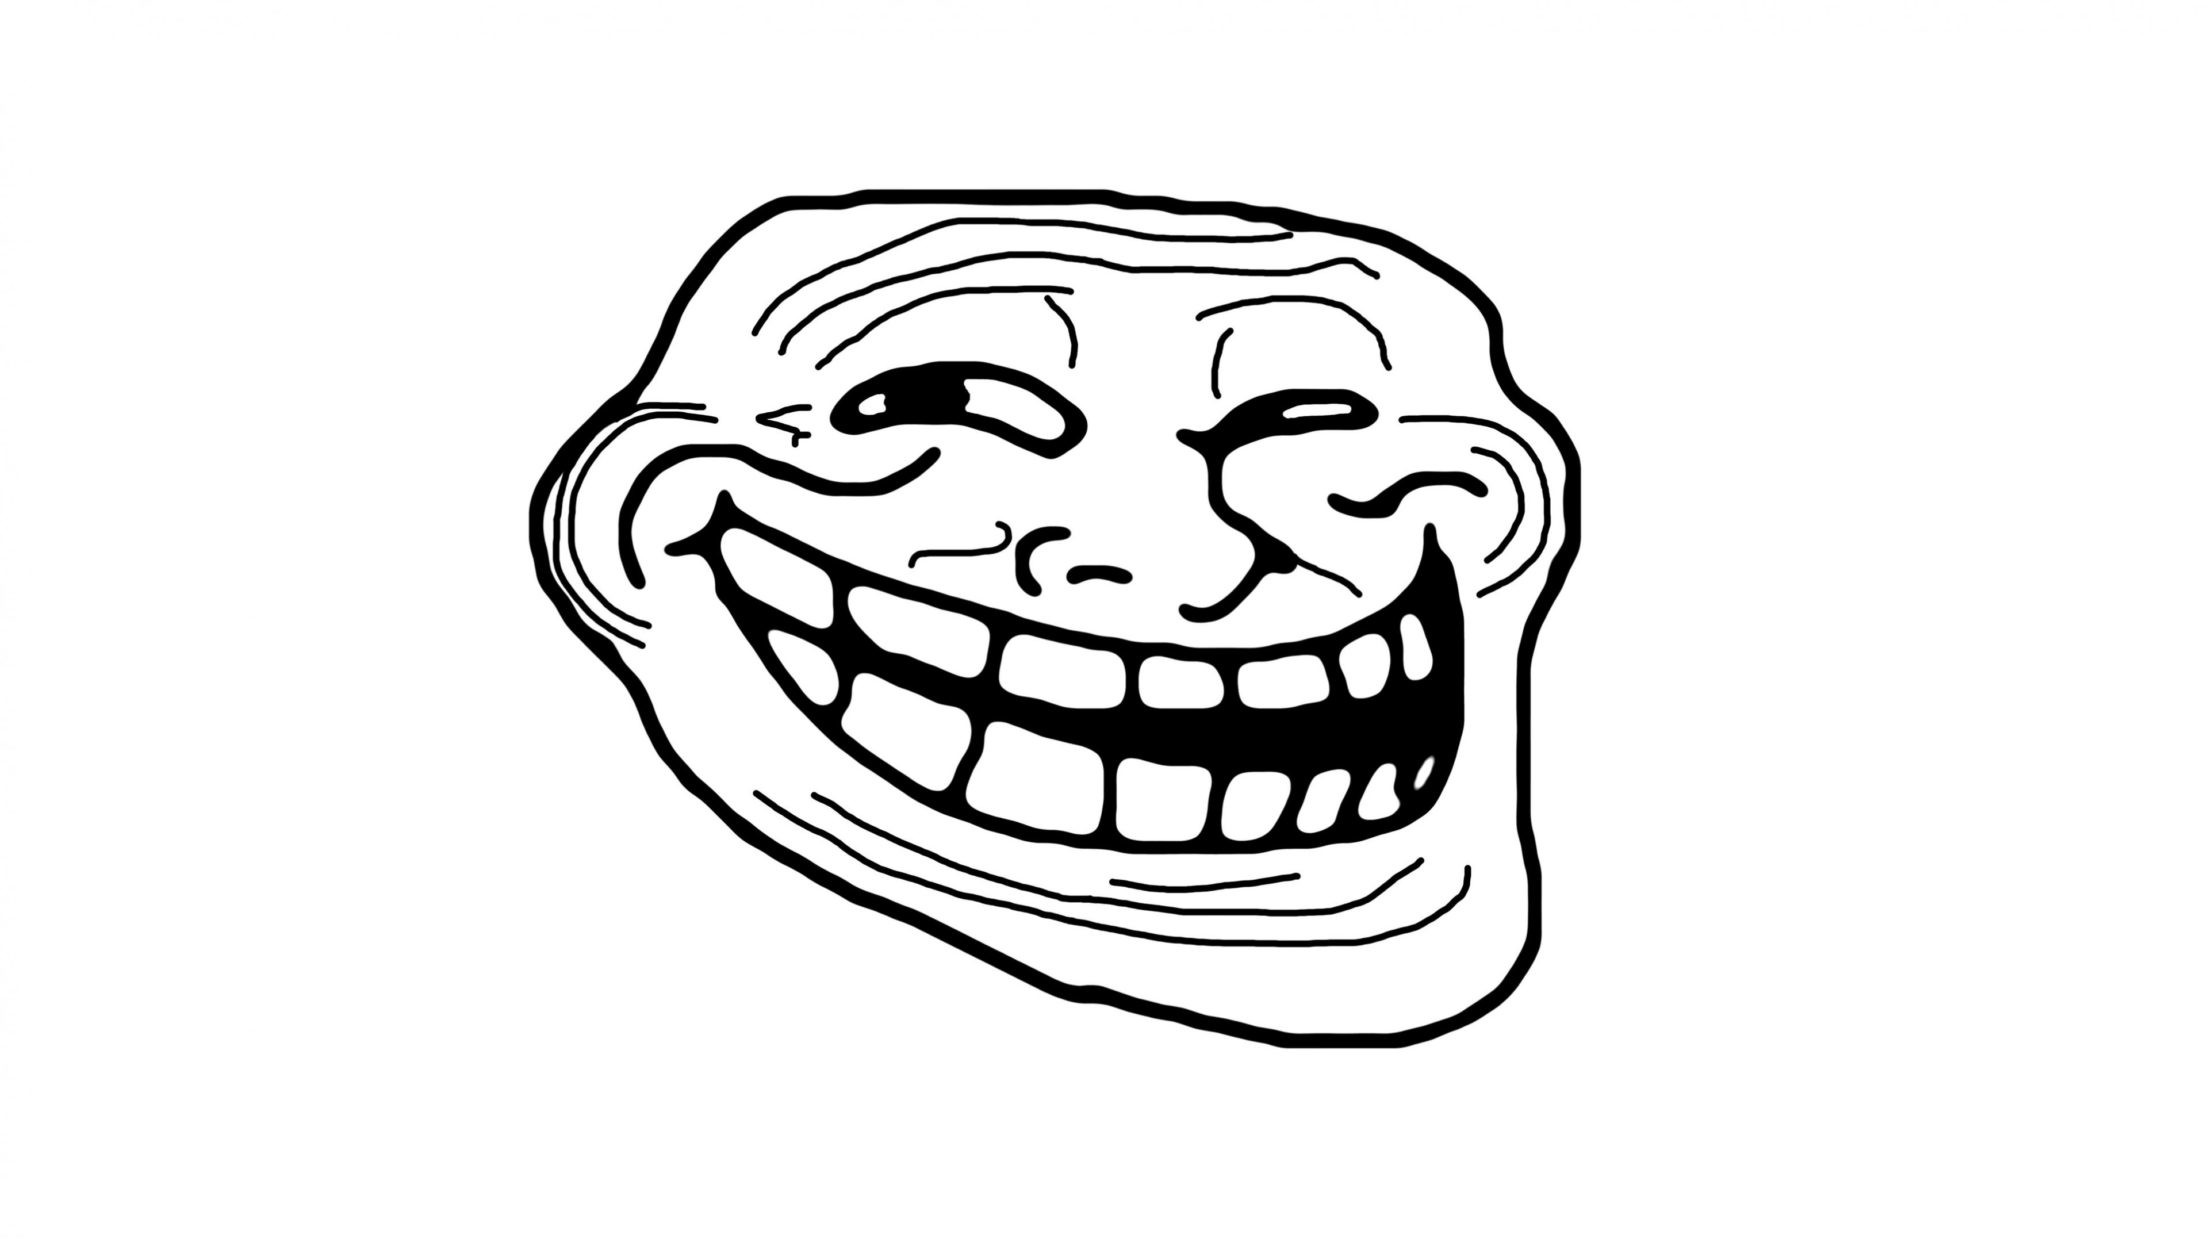 troll face meme desktop & mobile hd wallpapers